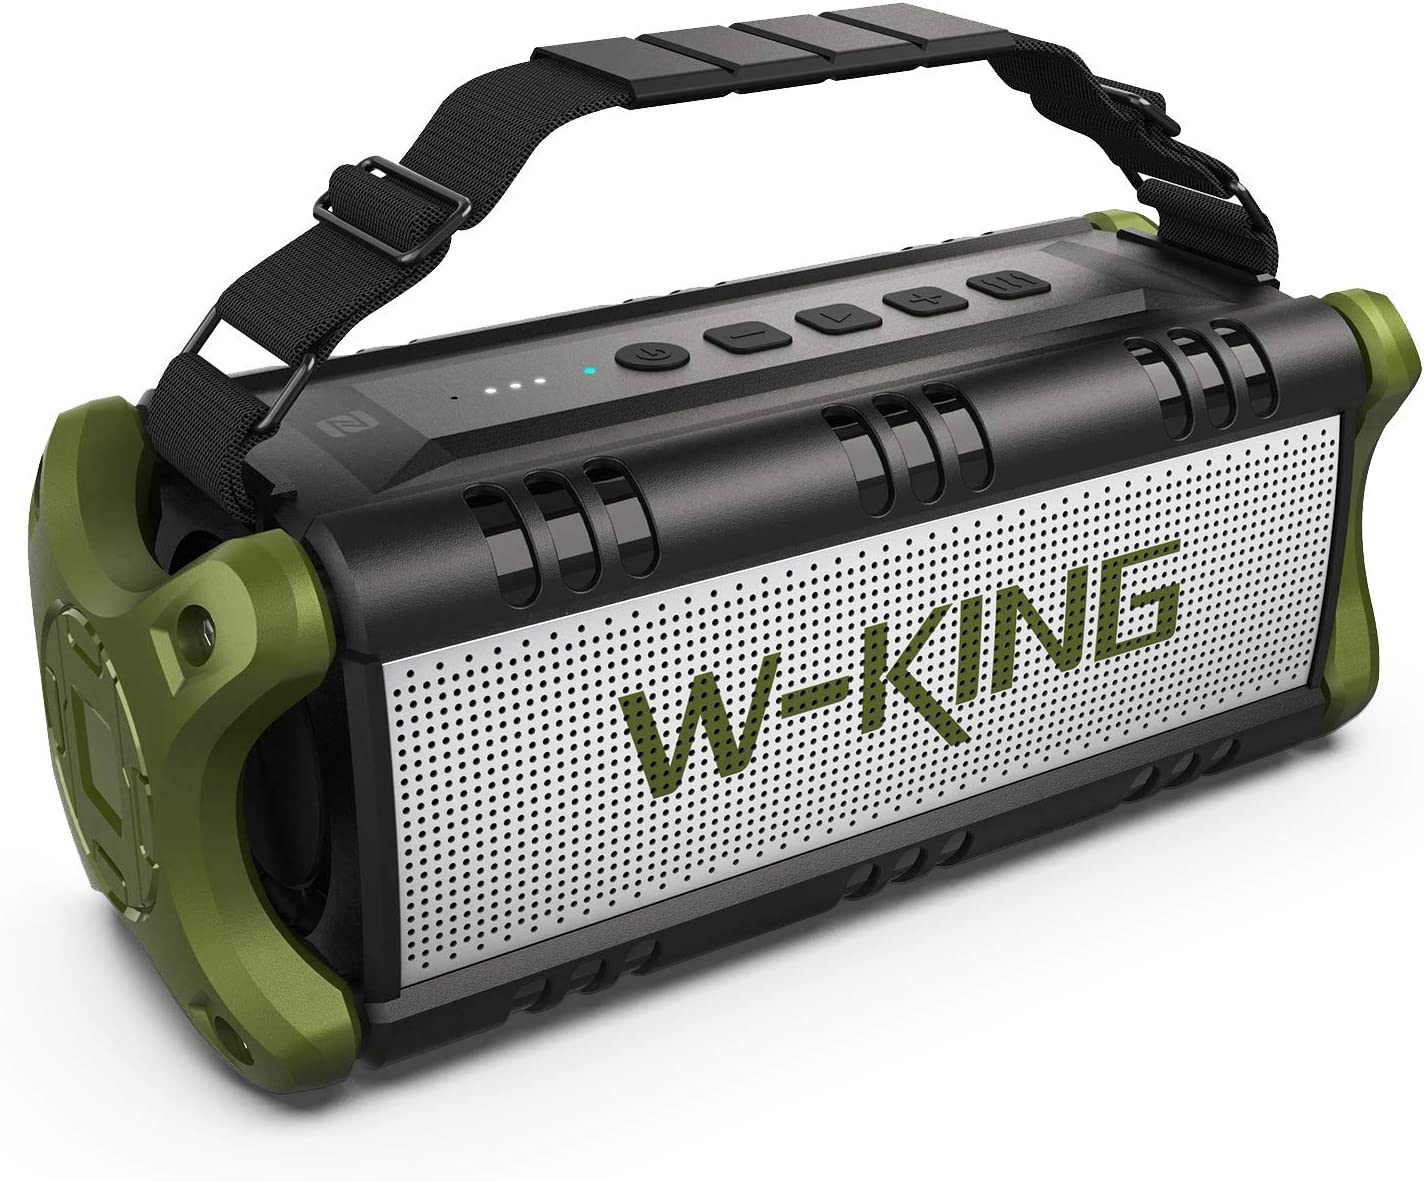 W-KING Bluetooth Speakers 8000mAh Battery Rich Bass Loud Stereo Sound